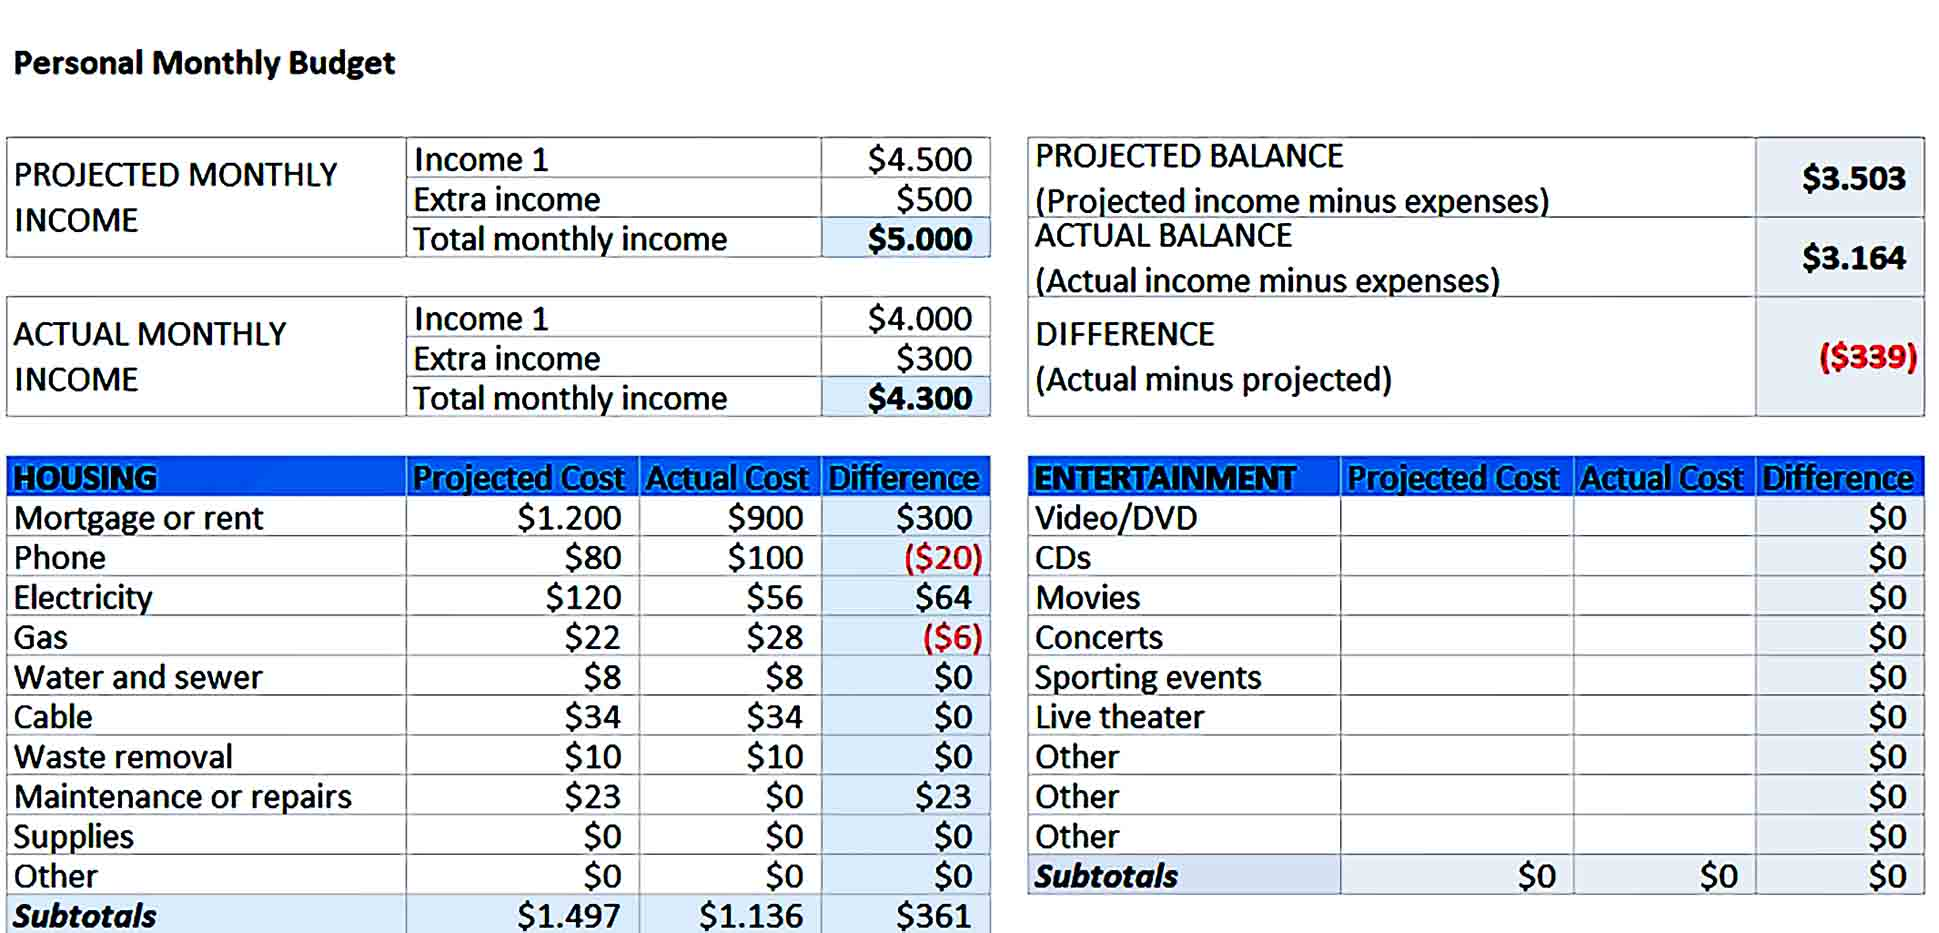 Sample personal monthly budget 1 2